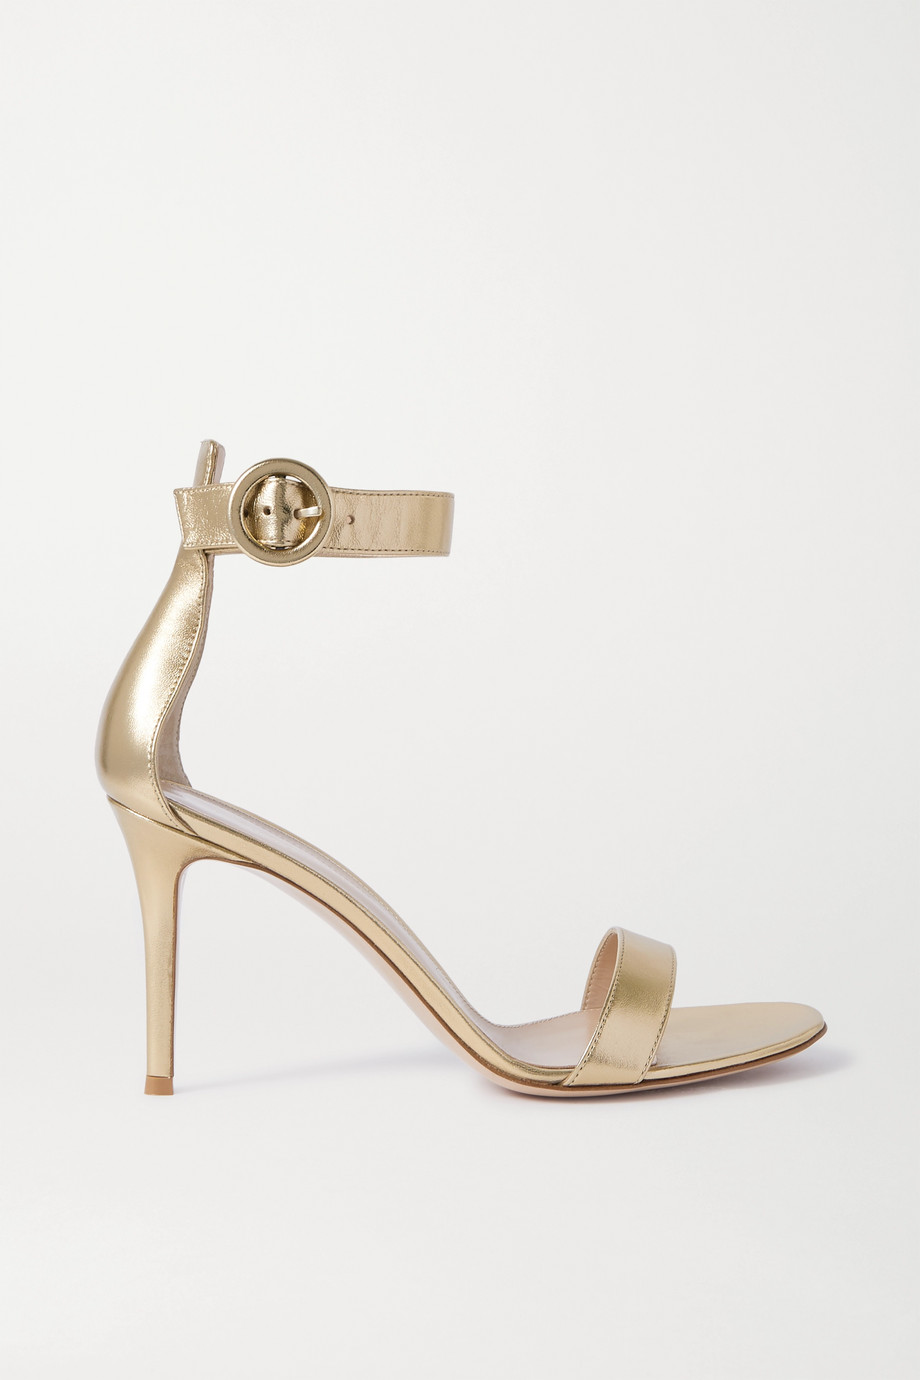 Gianvito Rossi Portofino 85 metallic leather sandals